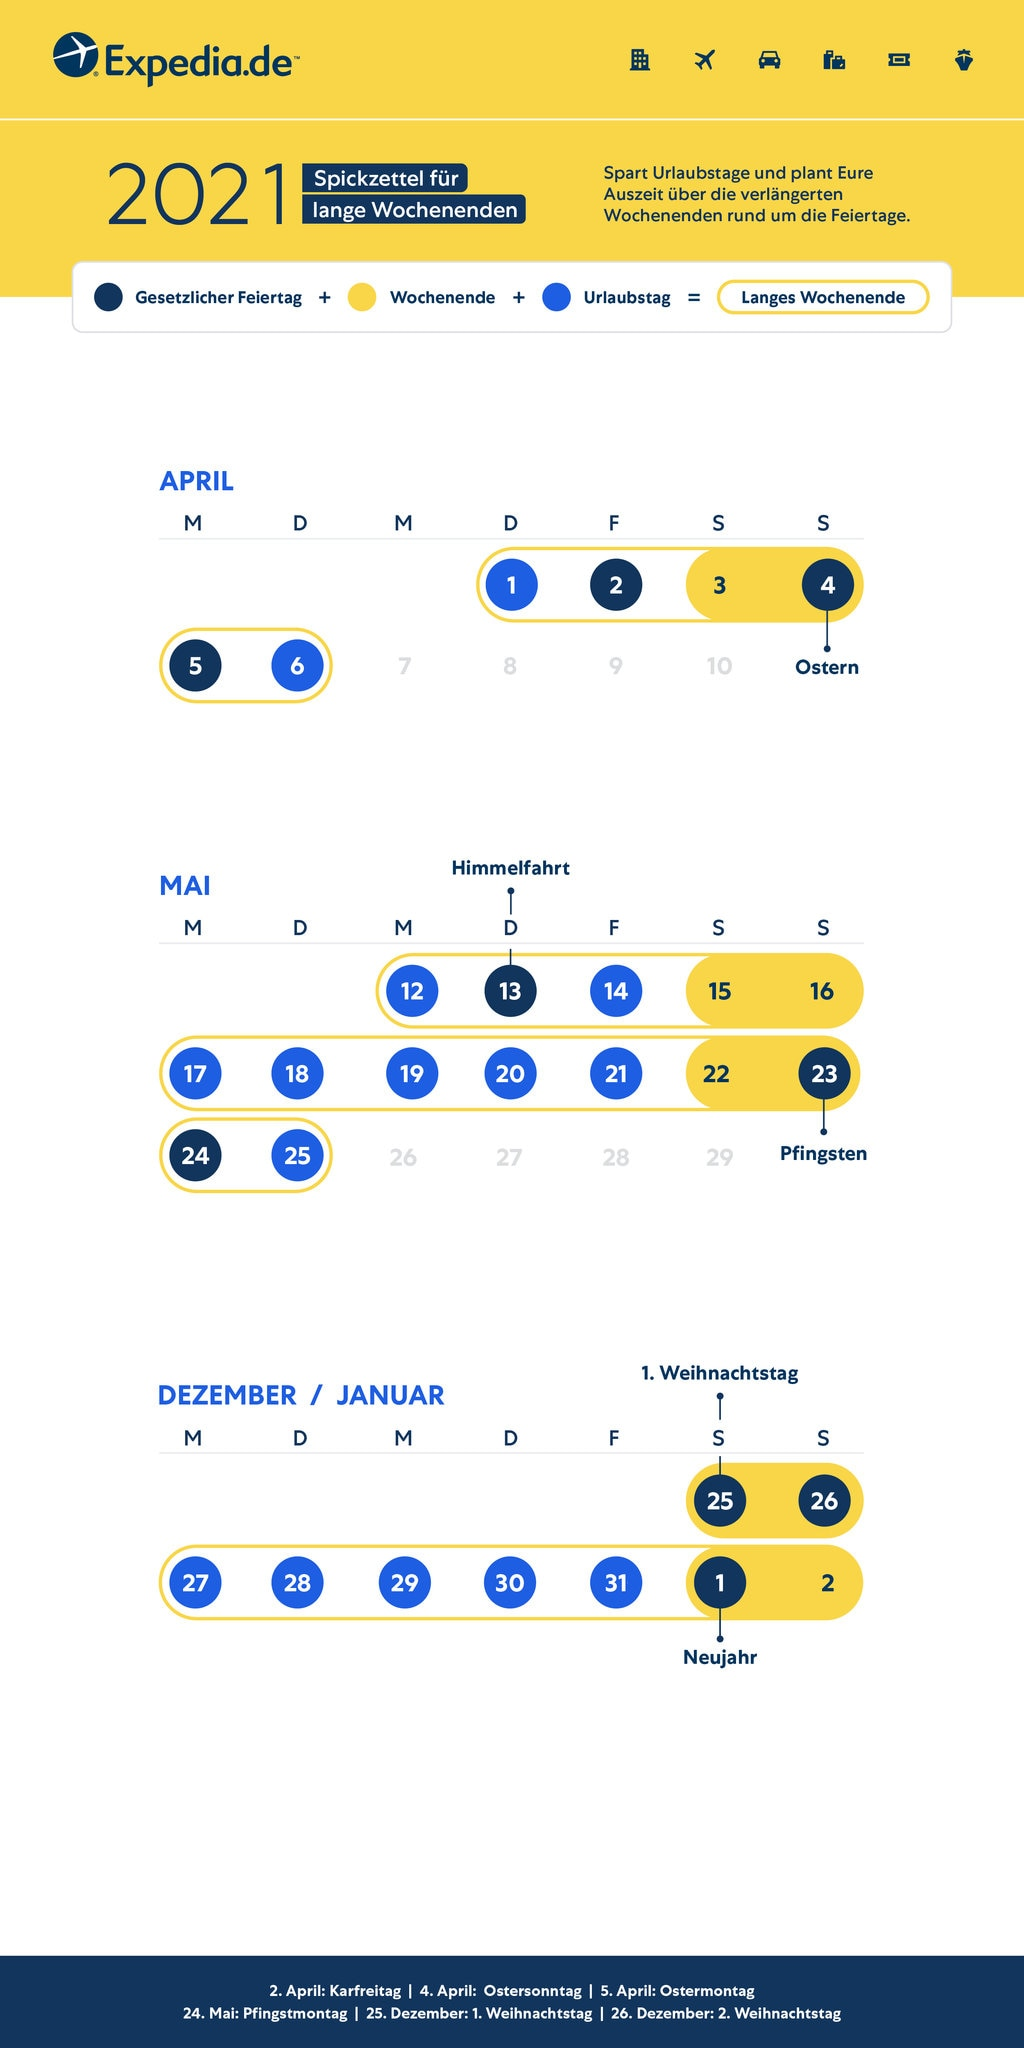 Germany-Expedia-2021_Long_Weekend_Planning_Calendars-Infographic-v2.jpg?1610490791